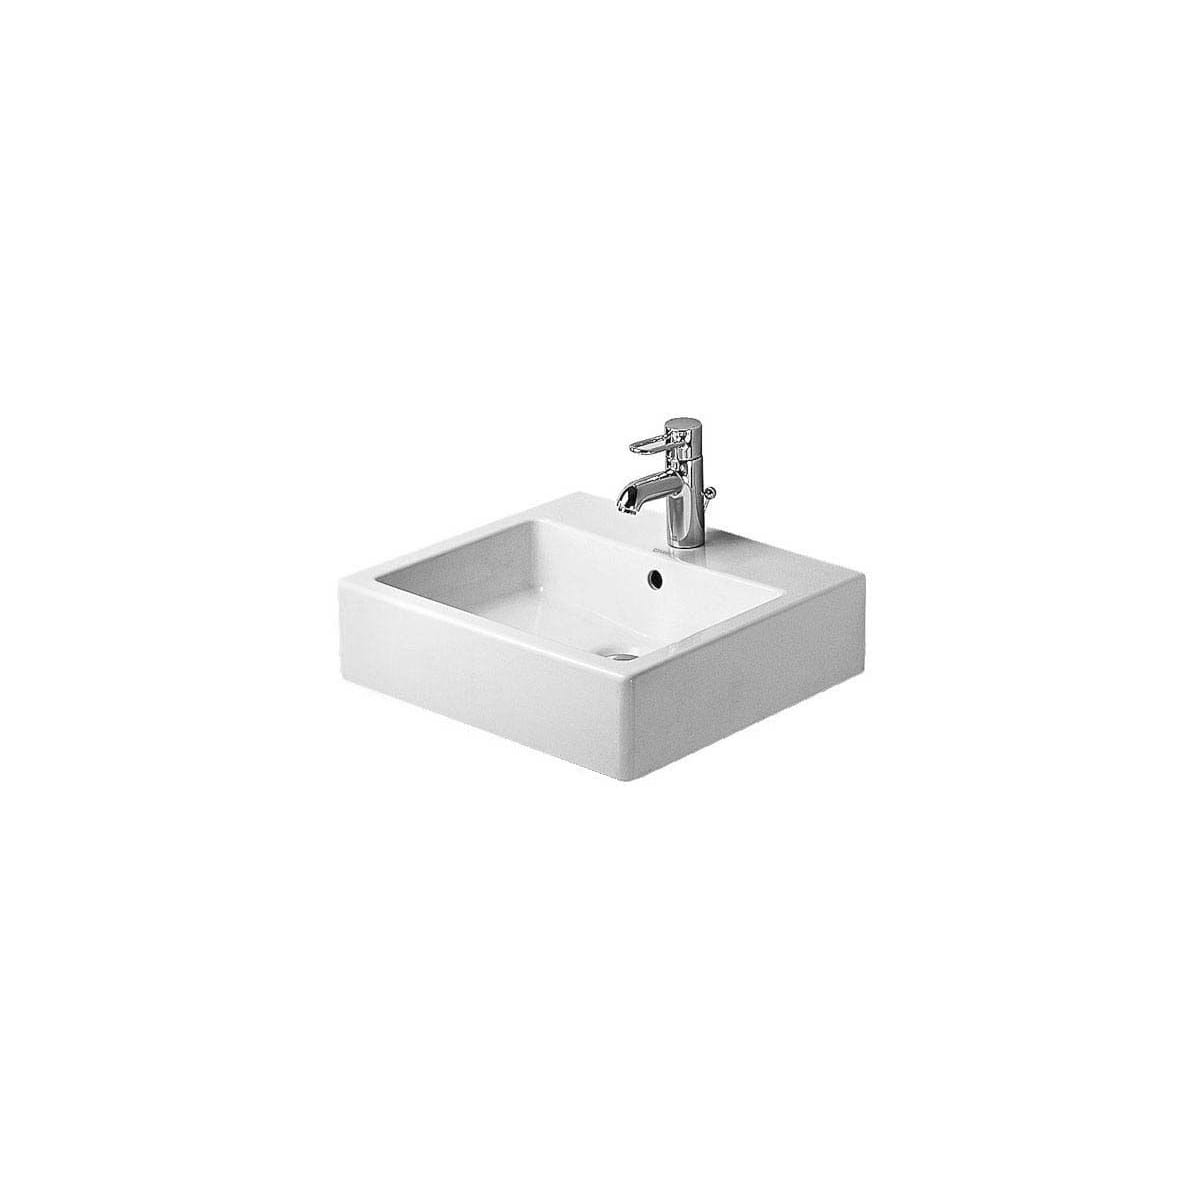 Duravit 04545000251 White With Wondergliss Ground Vero 19 5 8 Rectangular Ceramic Wall Mounted Bathroom Sink With Overflow And 3 Faucet Holes At 8 Centers Faucet Com